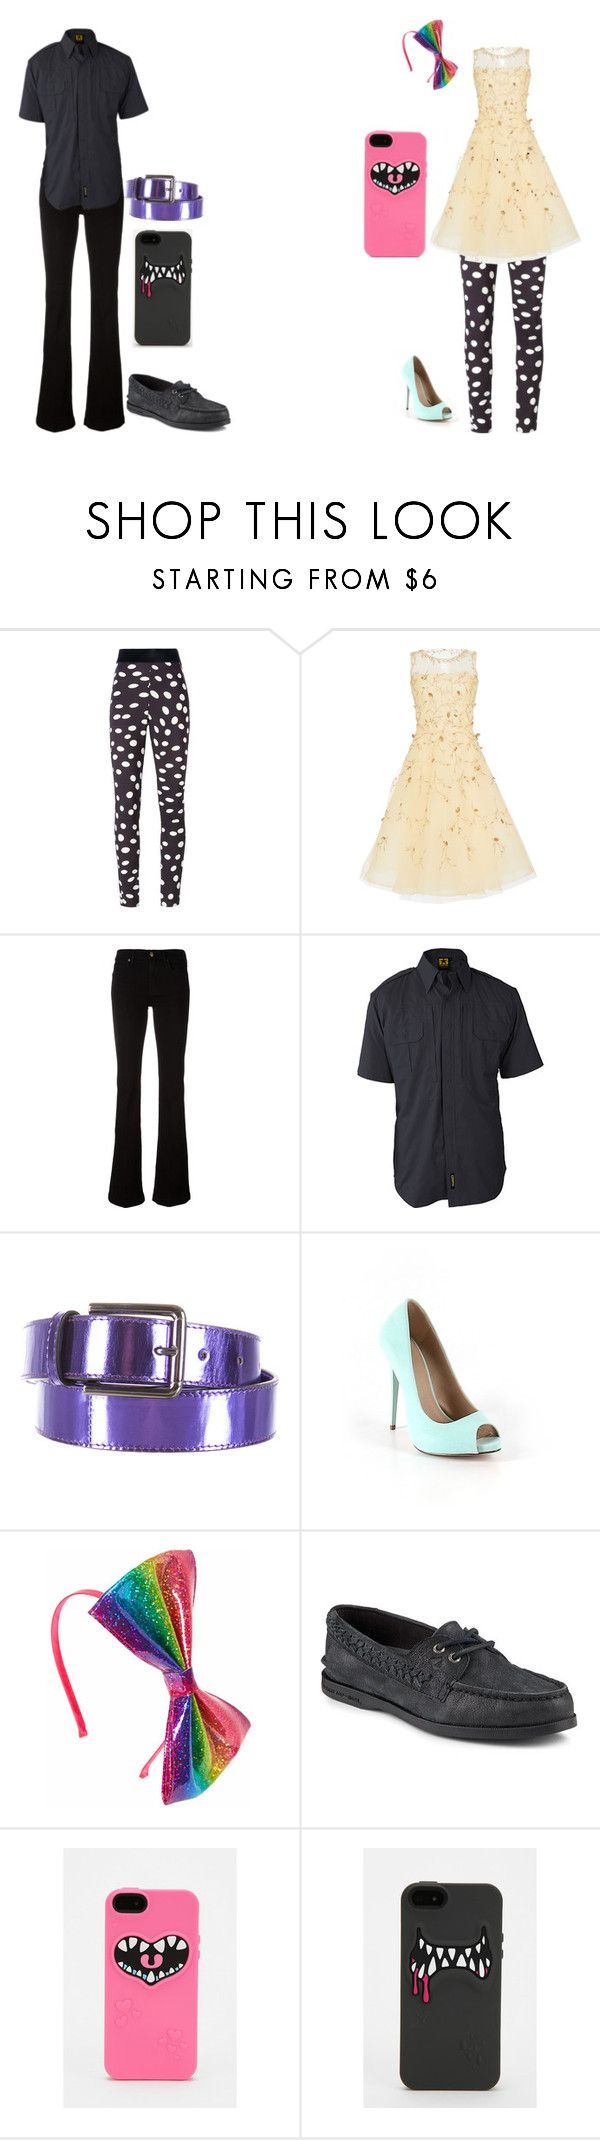 """""""Girly Girl vs Tomboy: 2nd signature outfits"""" by sierra-ivy on Polyvore featuring Emanuel Ungaro, Oscar de la Renta, 7 For All Mankind, Propper, Ports 1961, ASOS and Sperry"""